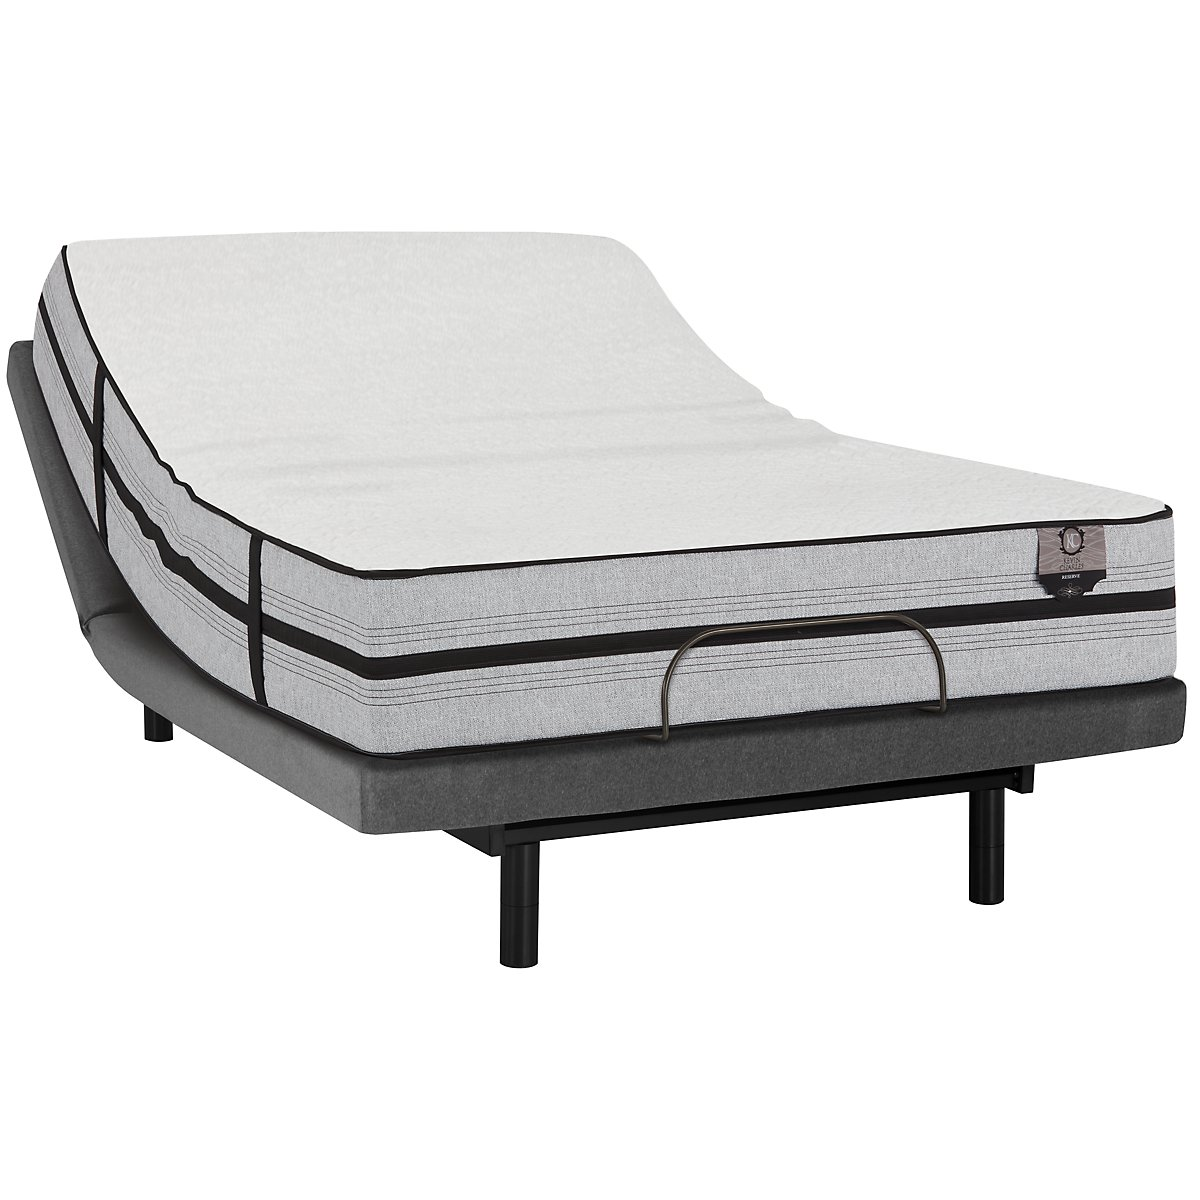 Kevin Charles Placid Plush Hybrid Deluxe Adjustable Mattress Set